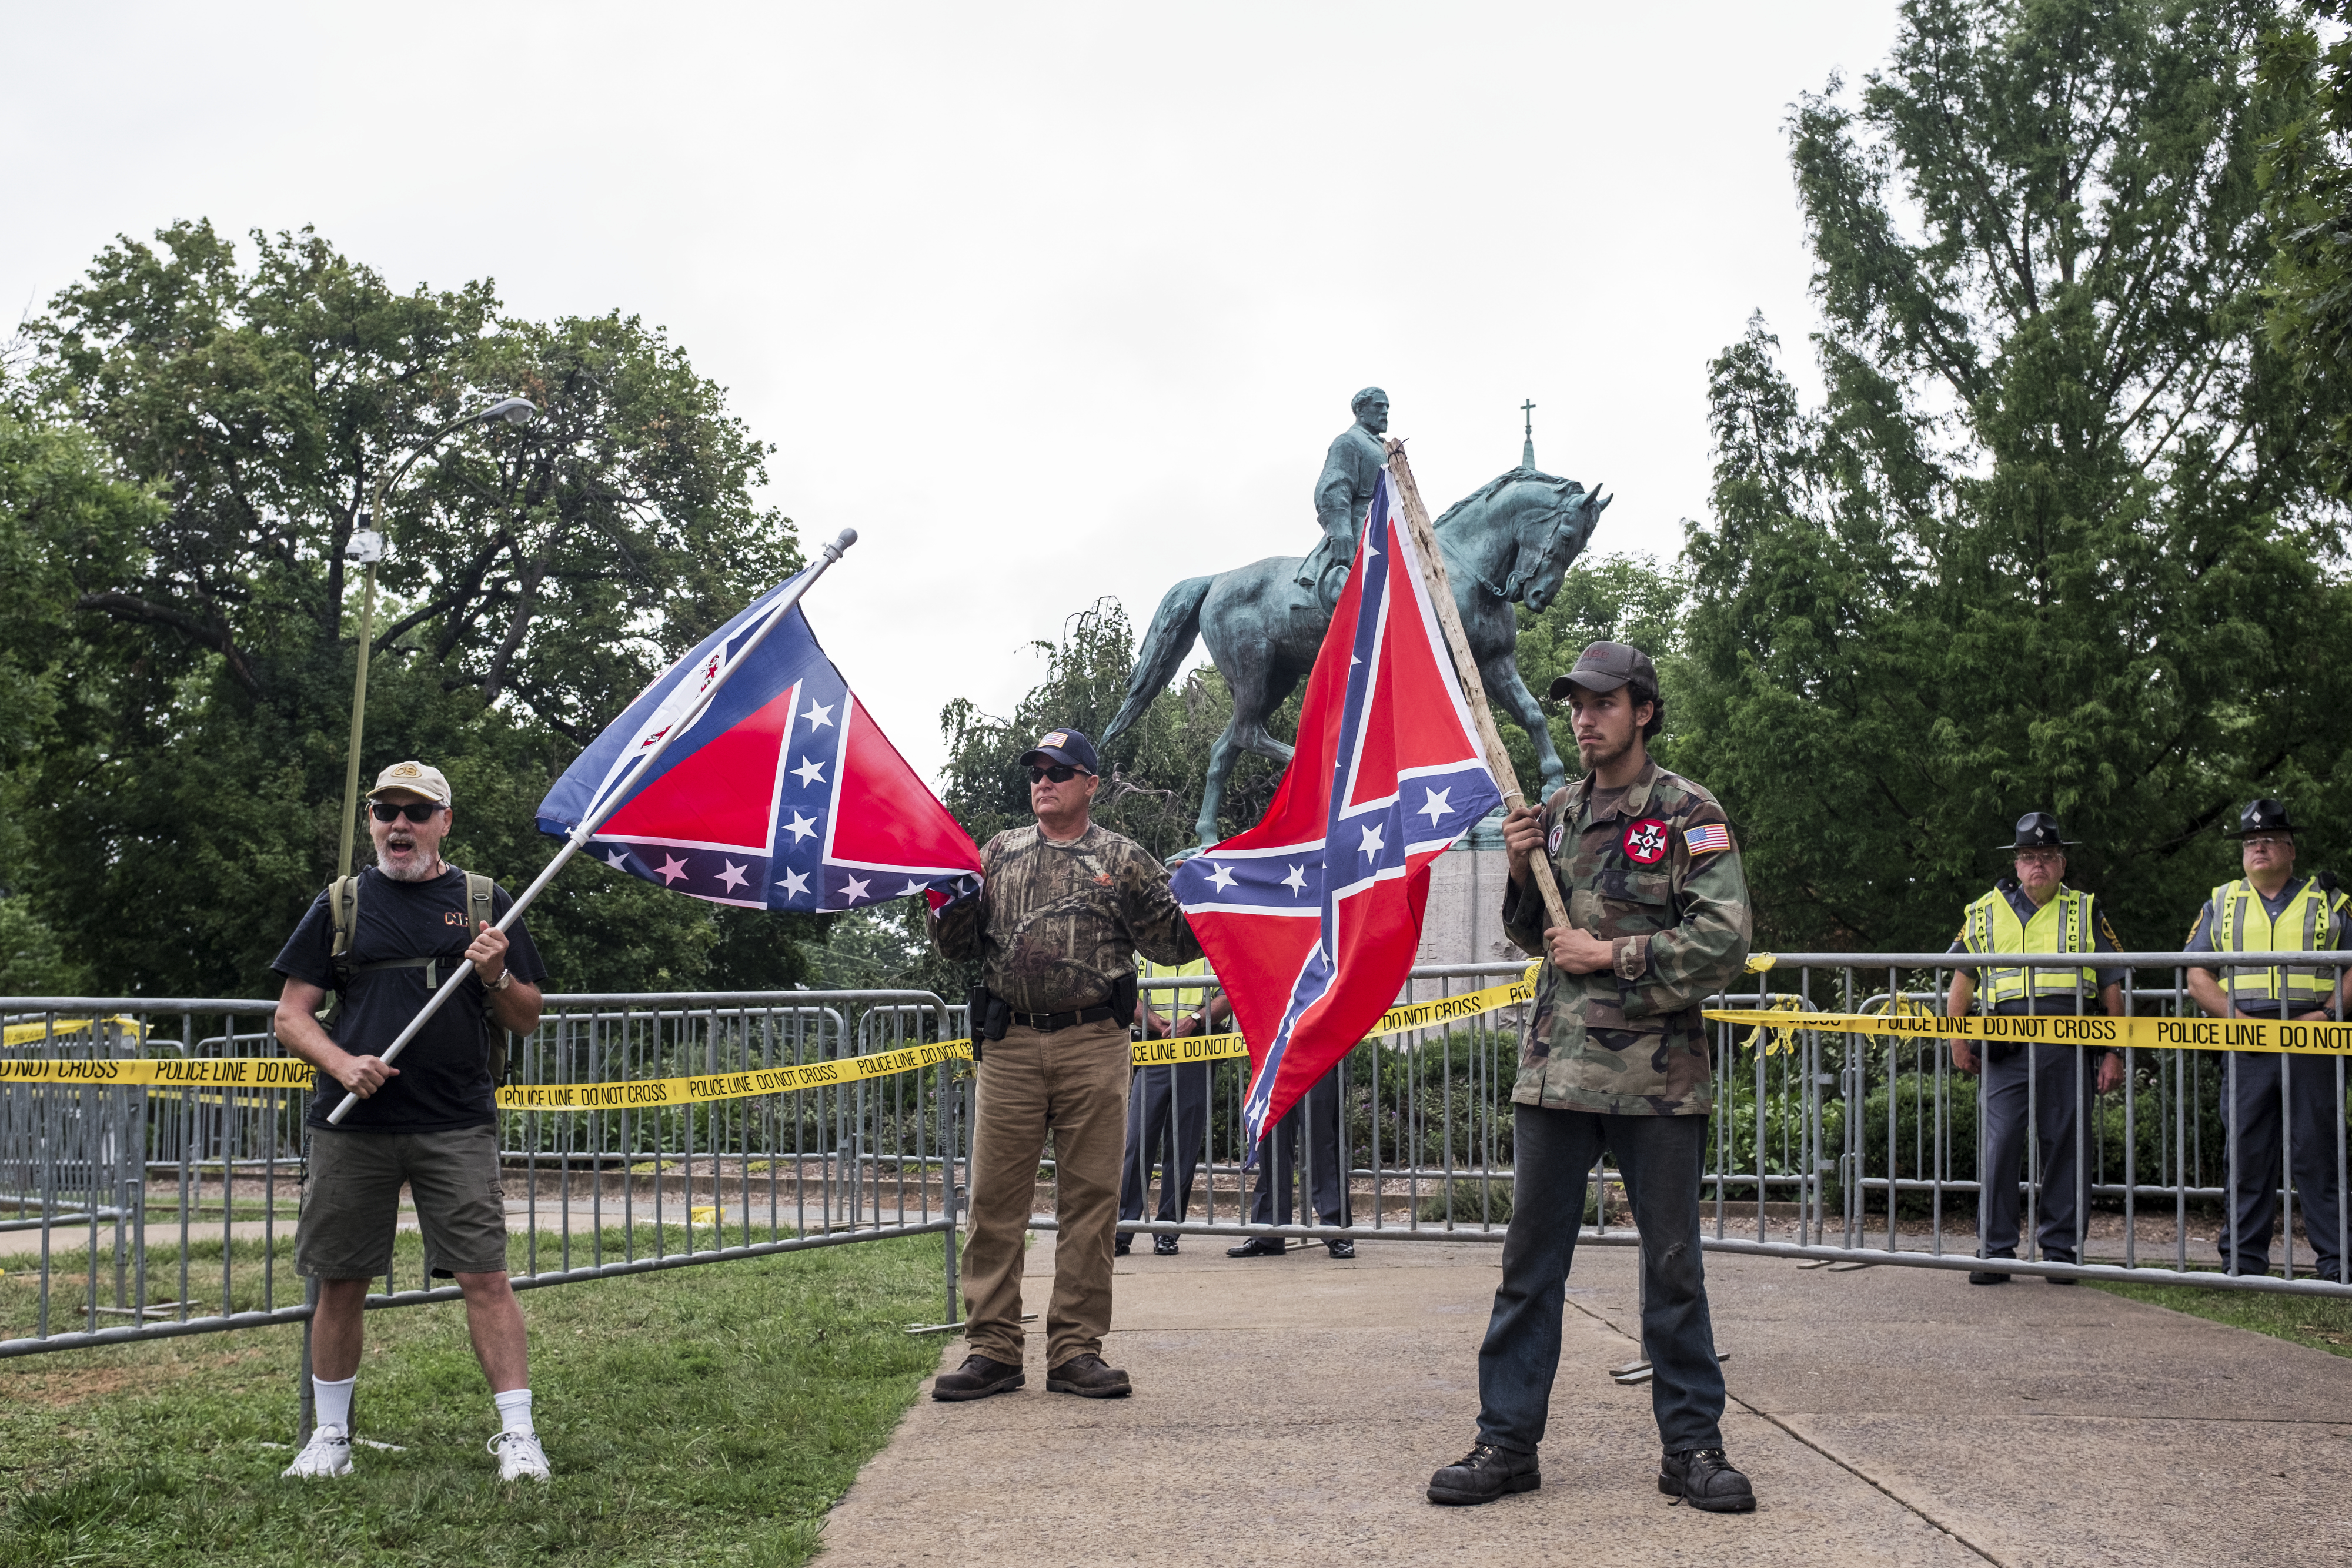 Self-described Nazis and white supremacists are running as Republicans across the country. The GOP is terrified.